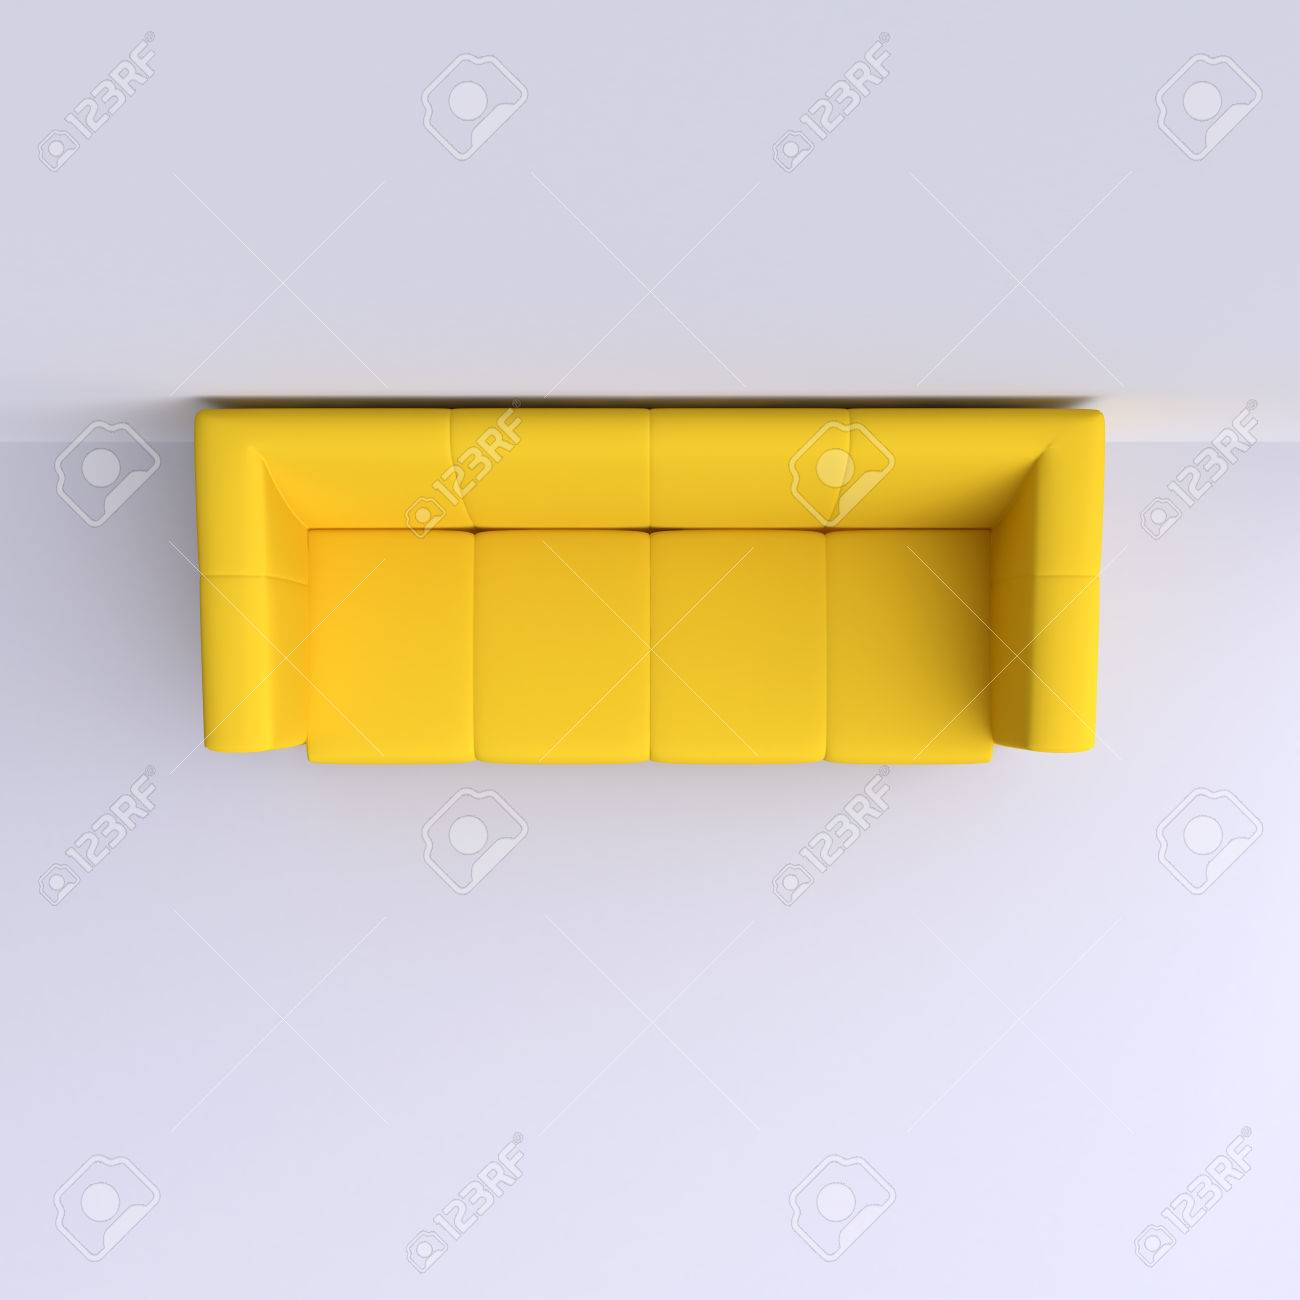 Simple Sofa In The Corner Of The Room Top View 3d Illustration